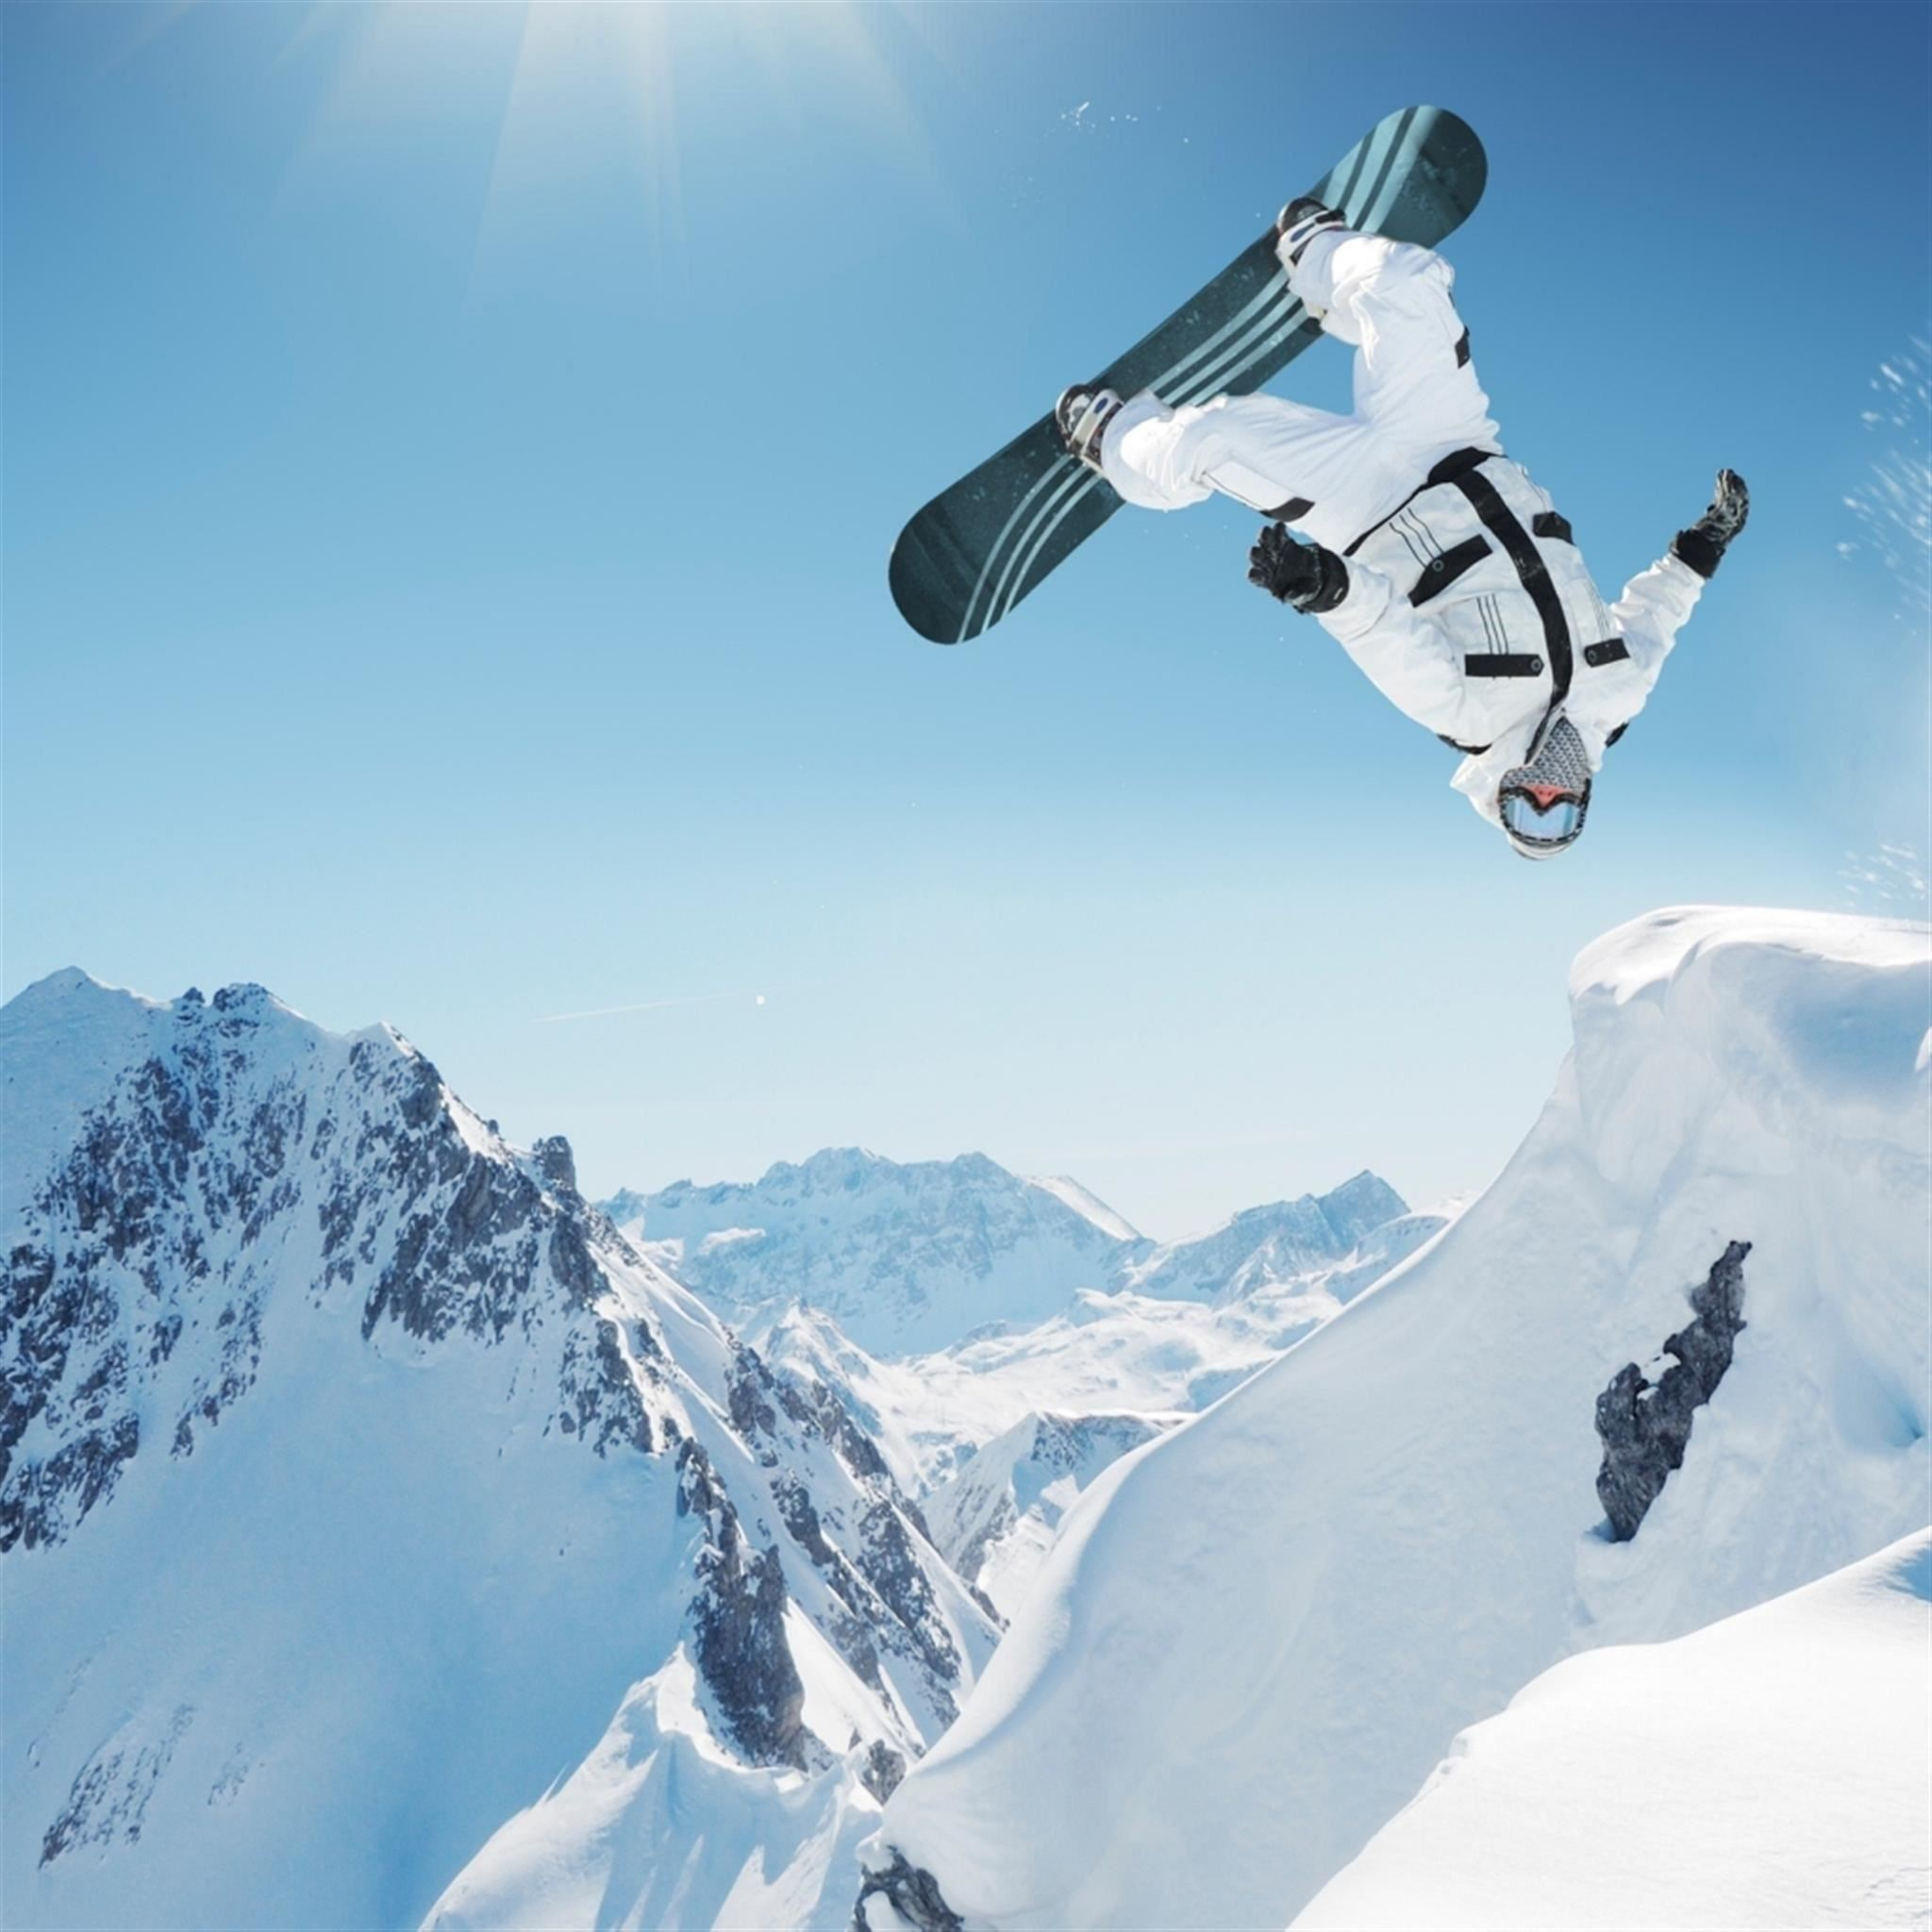 Ski Extreme Sports IPad Air Wallpapers Free Download